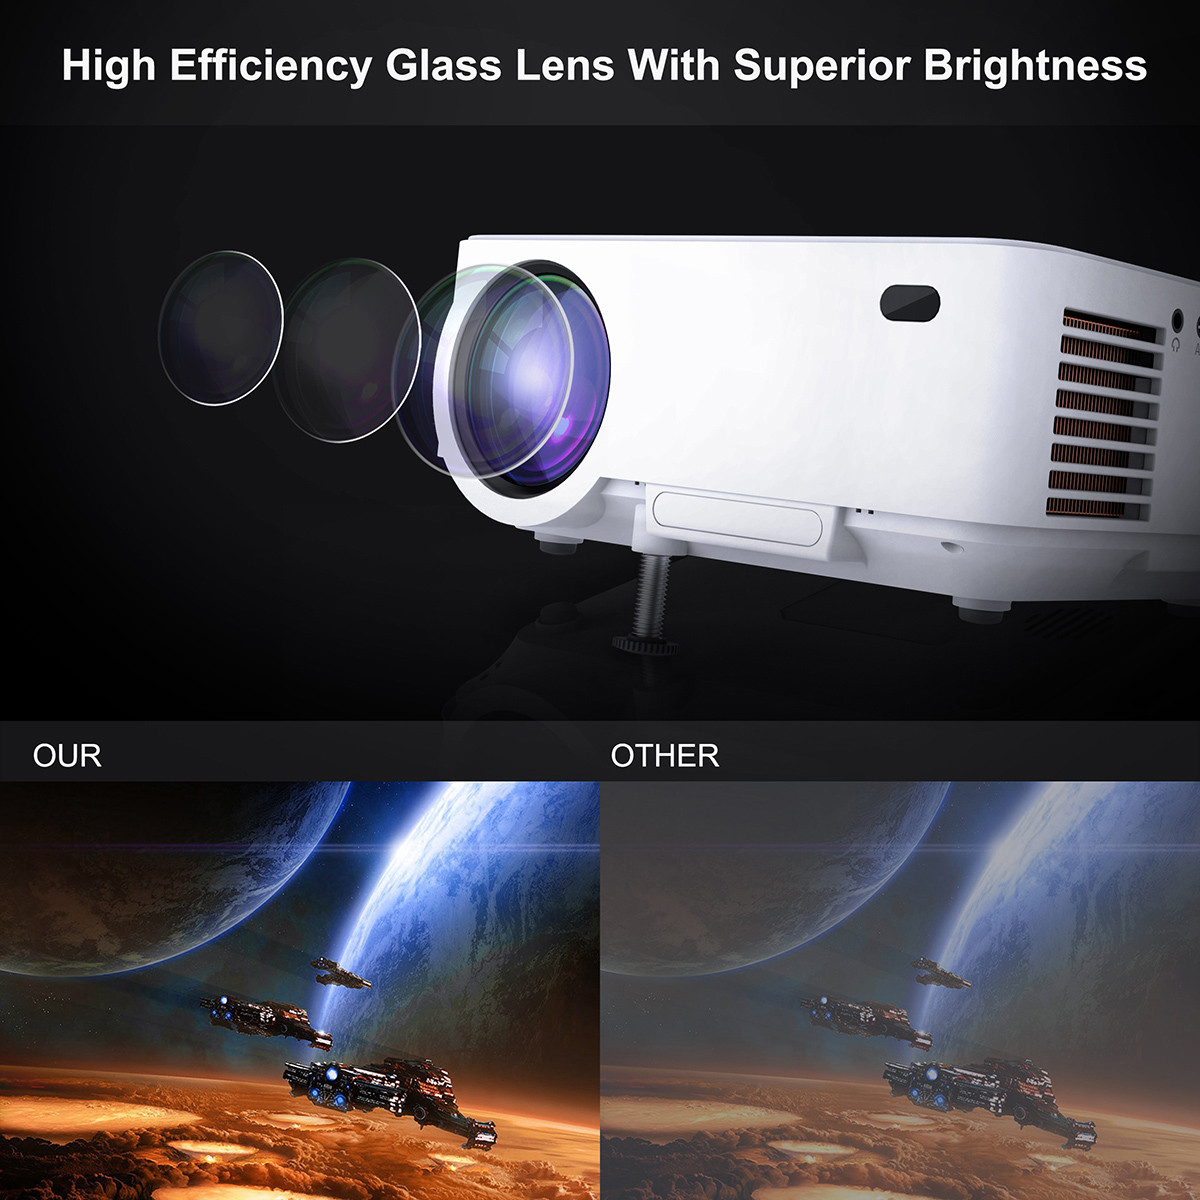 Exquizon T5 Upgraded Mini Portable Multimedia 1500 Lumens LCD Projector T5 Home Theater Entertainment Video Projector With HDMI USB SD AV VGA Interface for 1080P Laptop HD DVD Player Smartphone USB Ca- Black White EU Plug